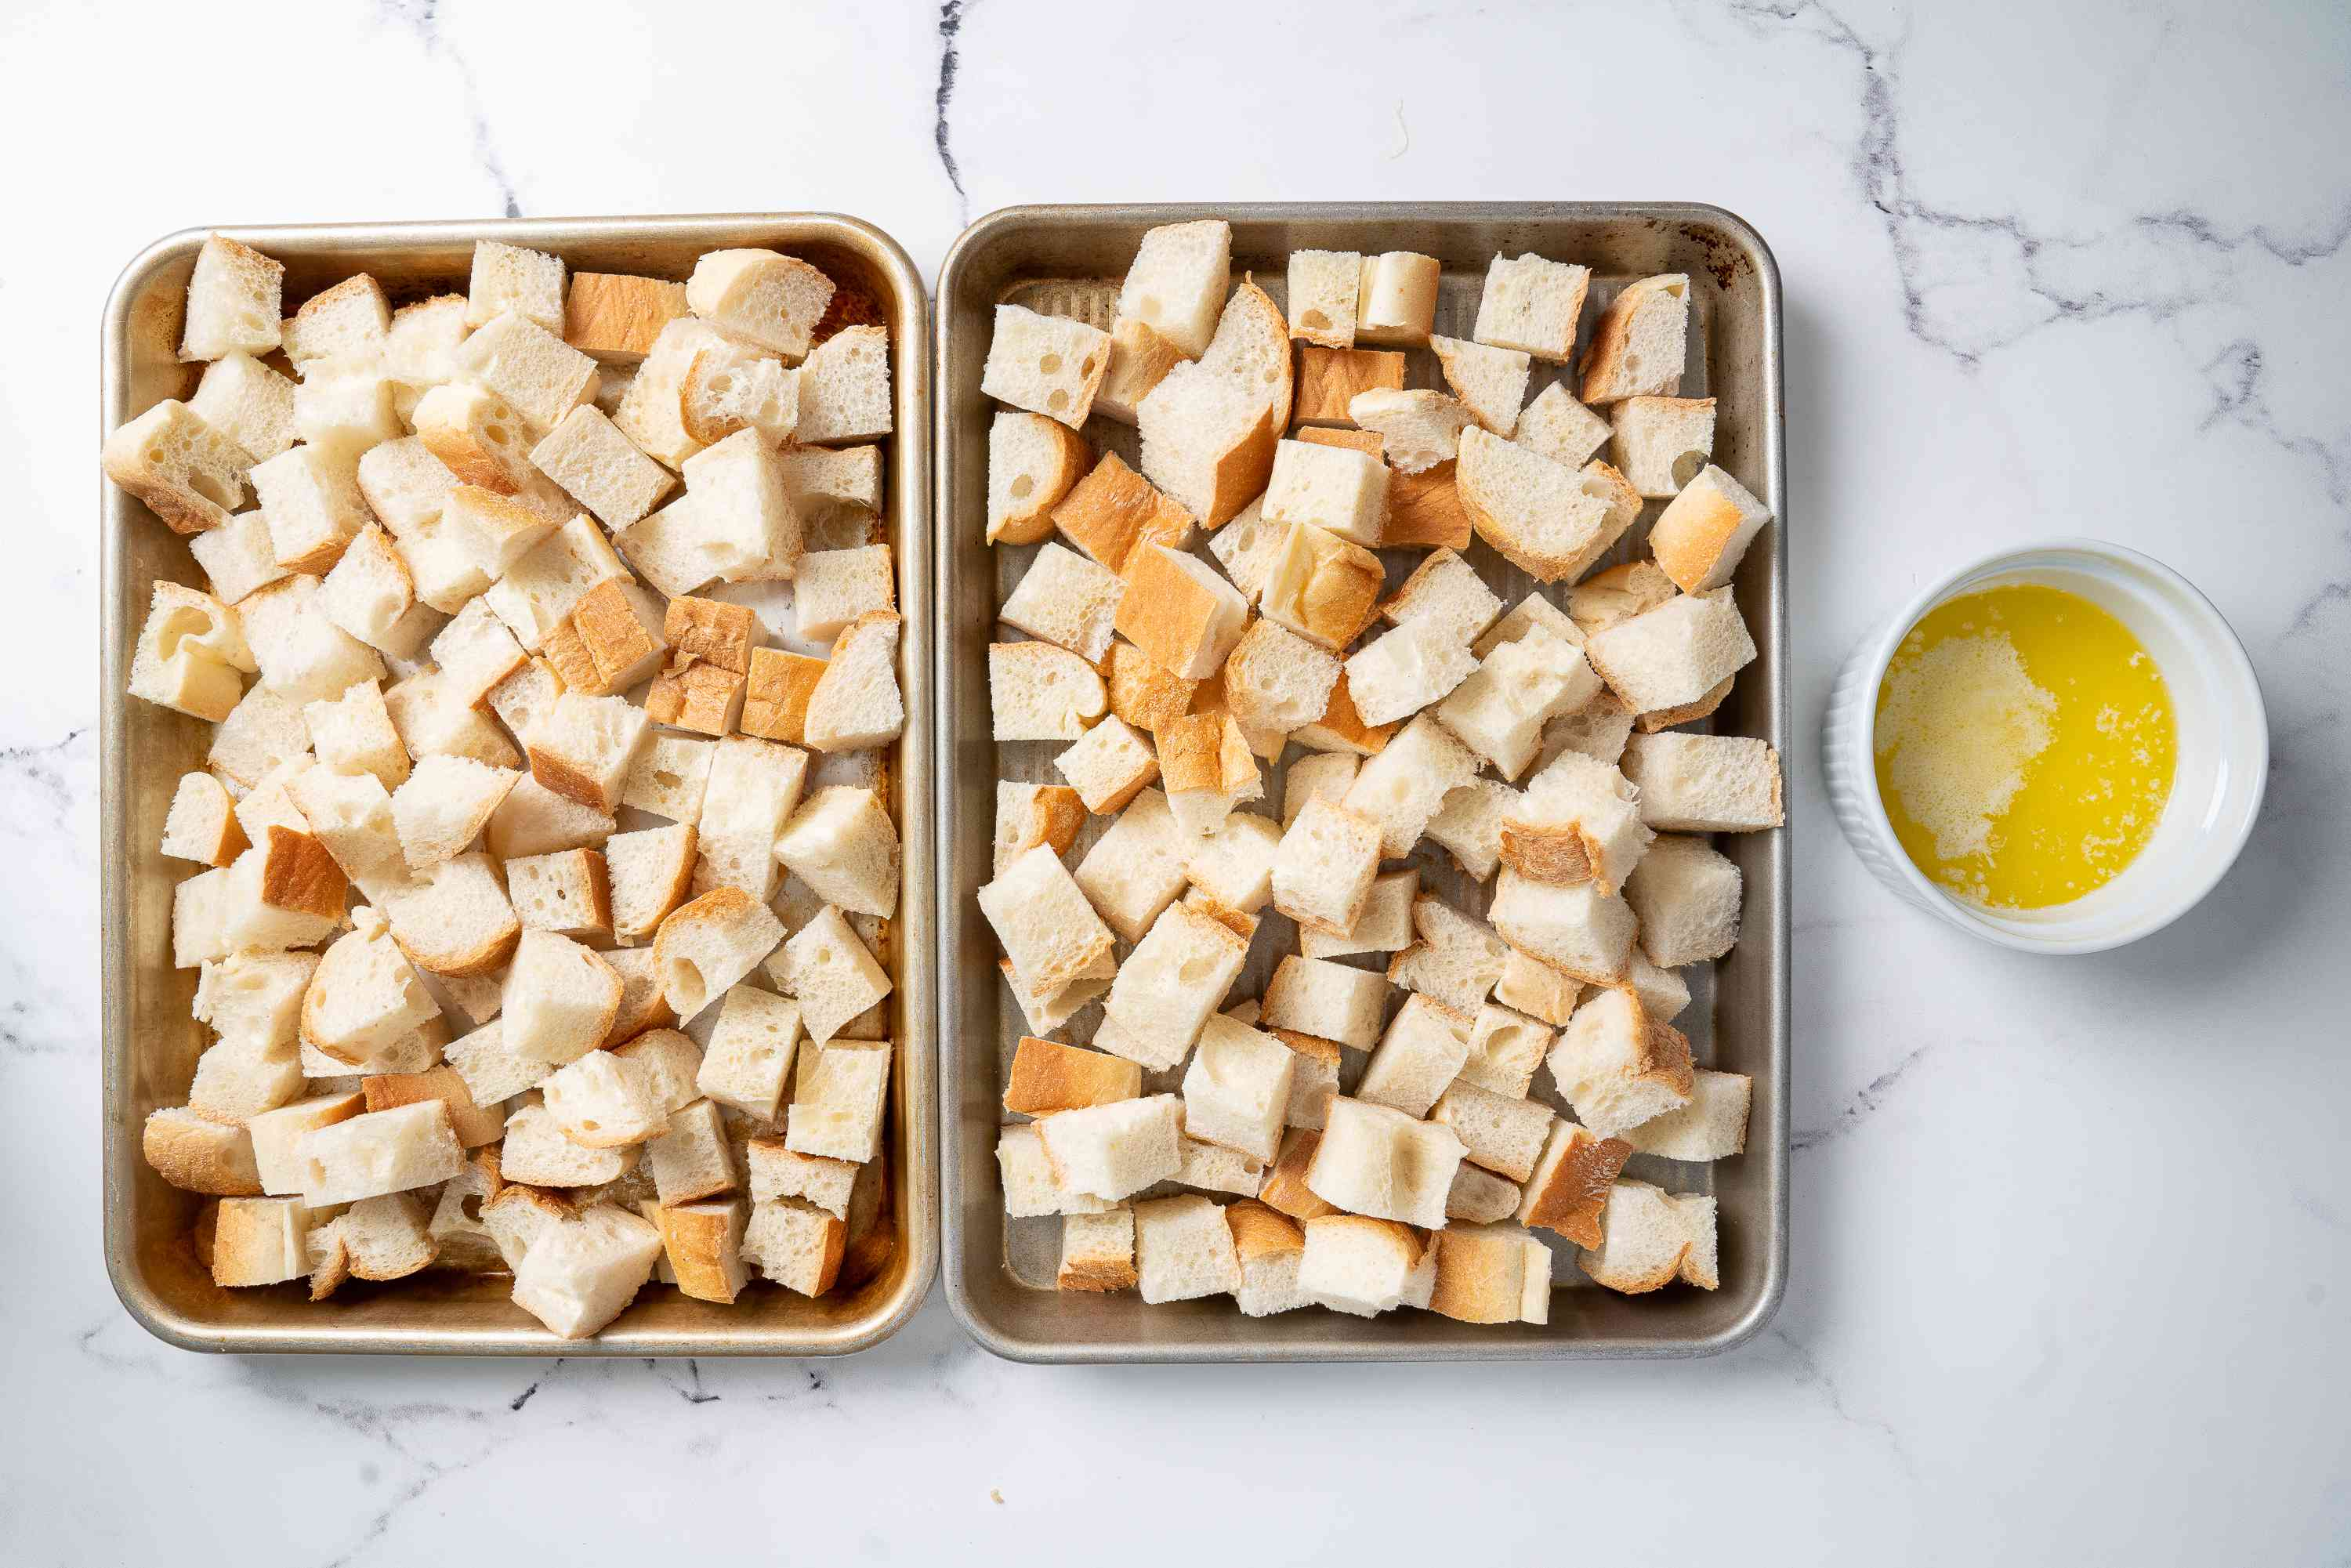 Bread cubes on baking sheets with melted butter in a bowl